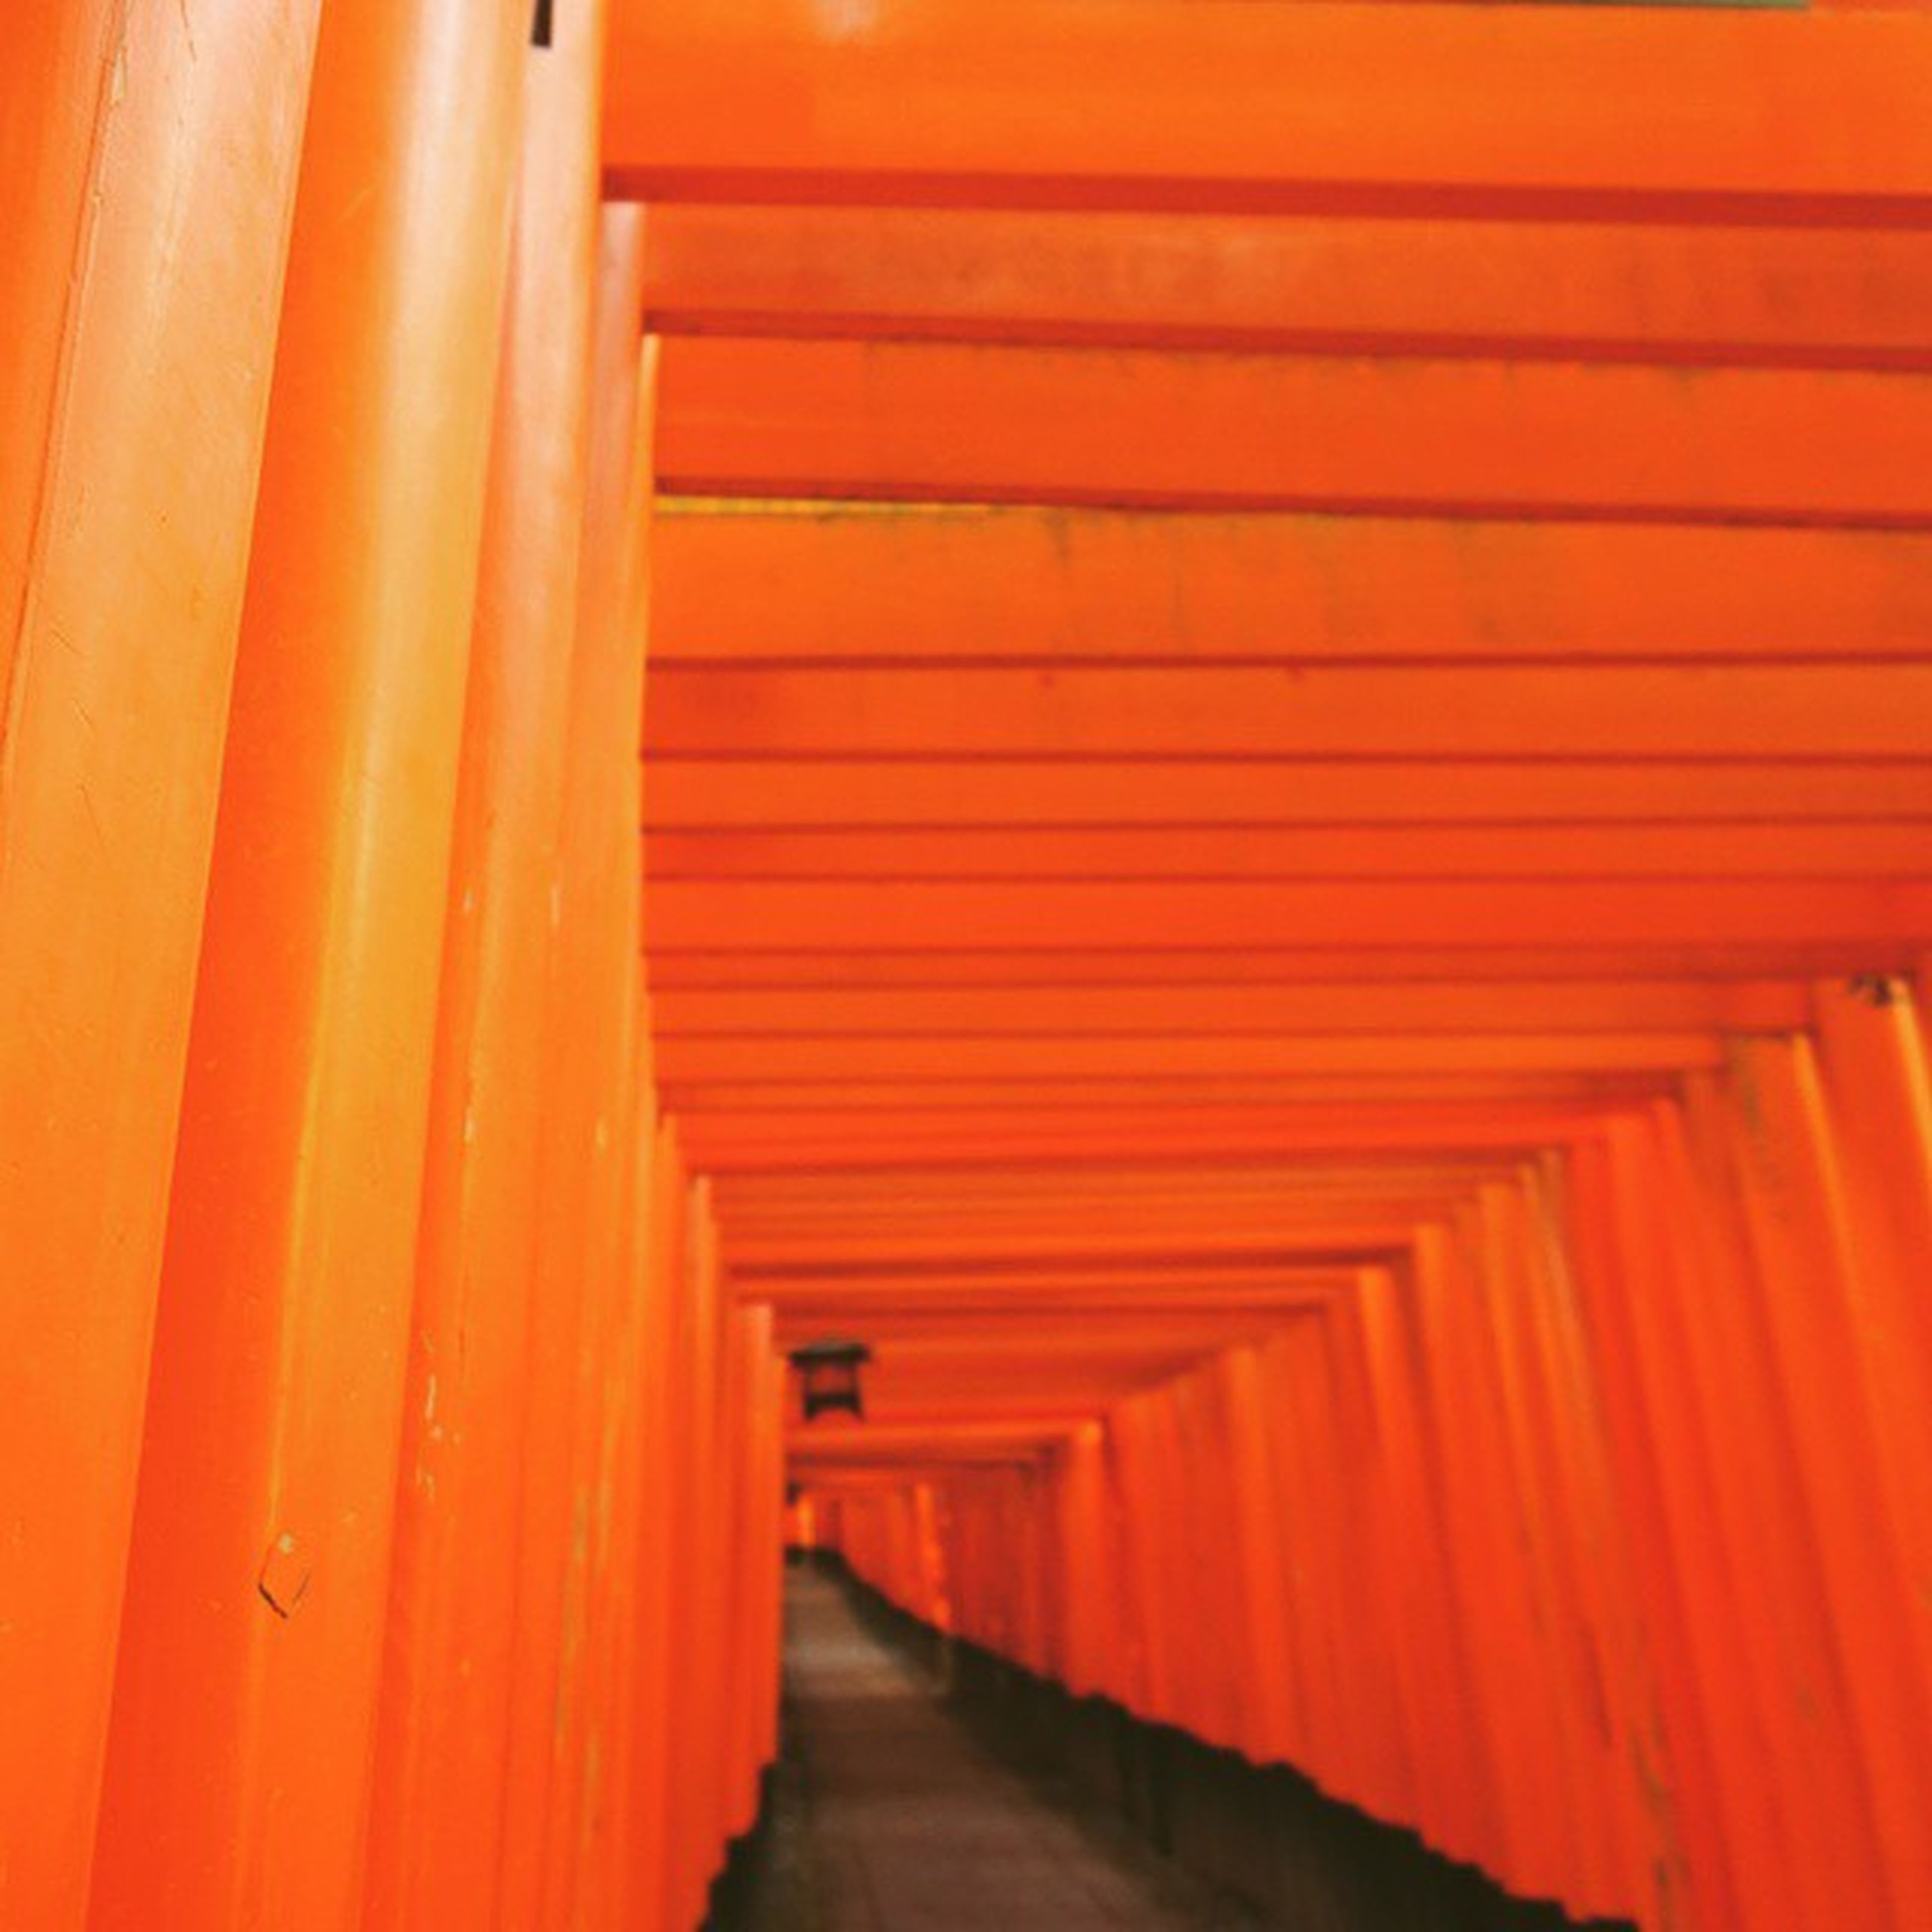 the way forward, diminishing perspective, built structure, vanishing point, architecture, narrow, in a row, long, indoors, red, orange color, corridor, tunnel, empty, walkway, transportation, wall - building feature, illuminated, architectural column, no people